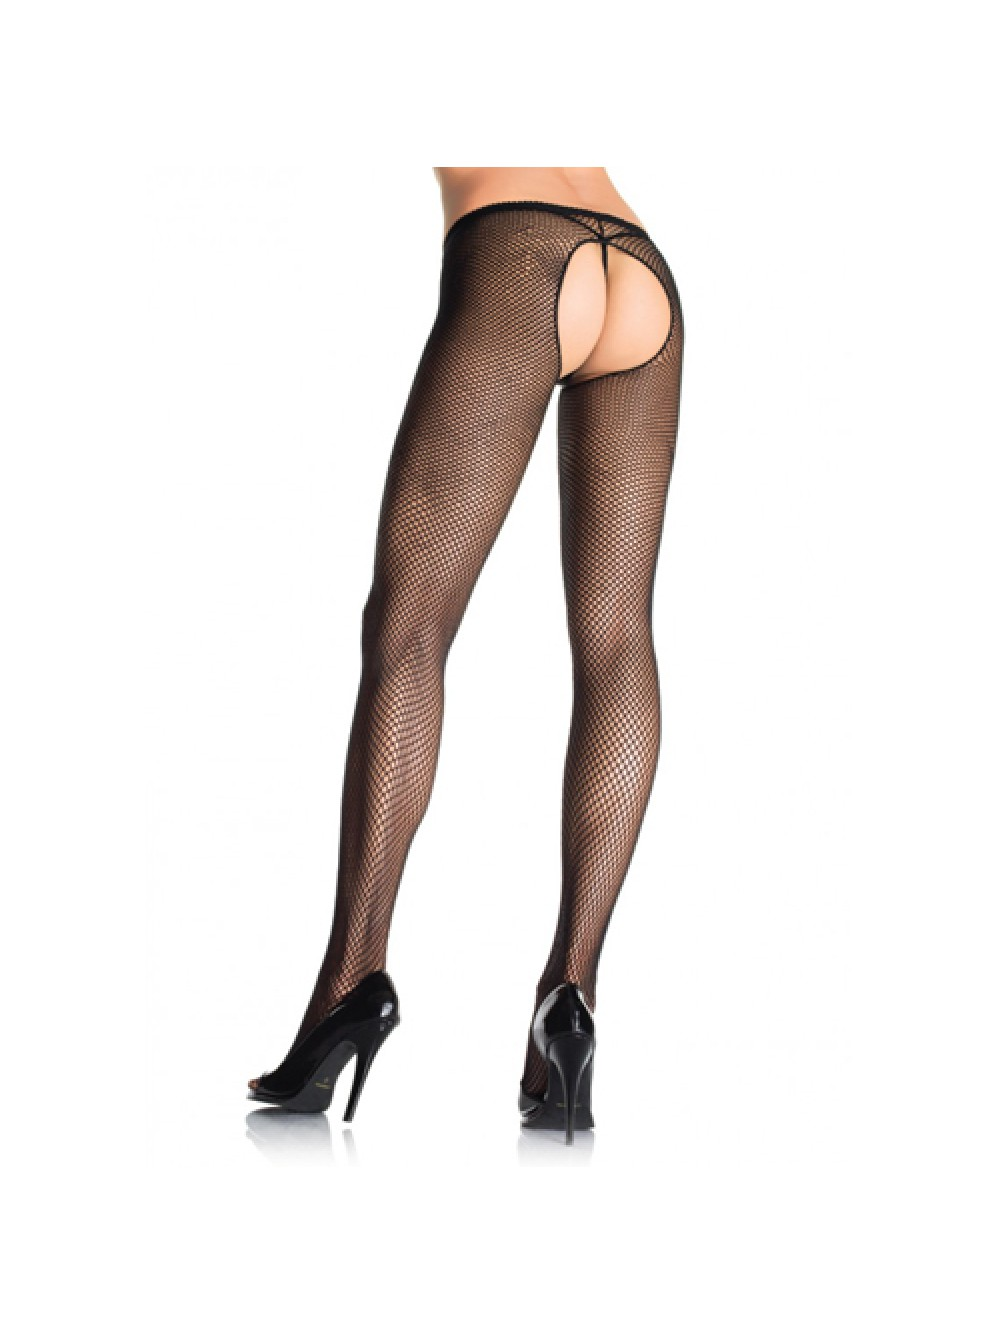 Crotchless Fishnet Pantyhose - Black